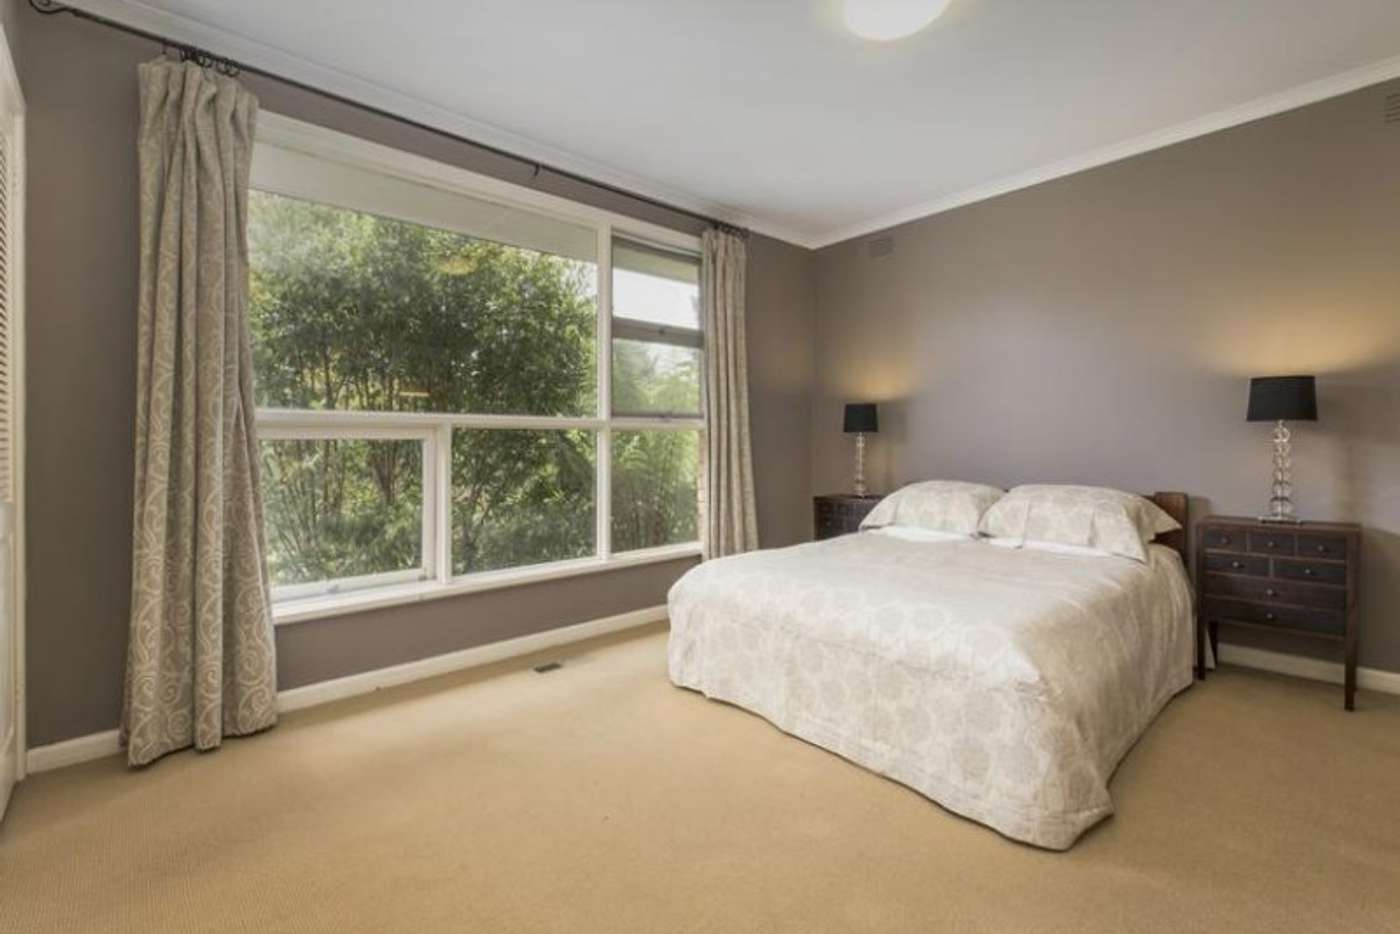 Seventh view of Homely house listing, 34 Minerva Avenue, Balwyn North VIC 3104